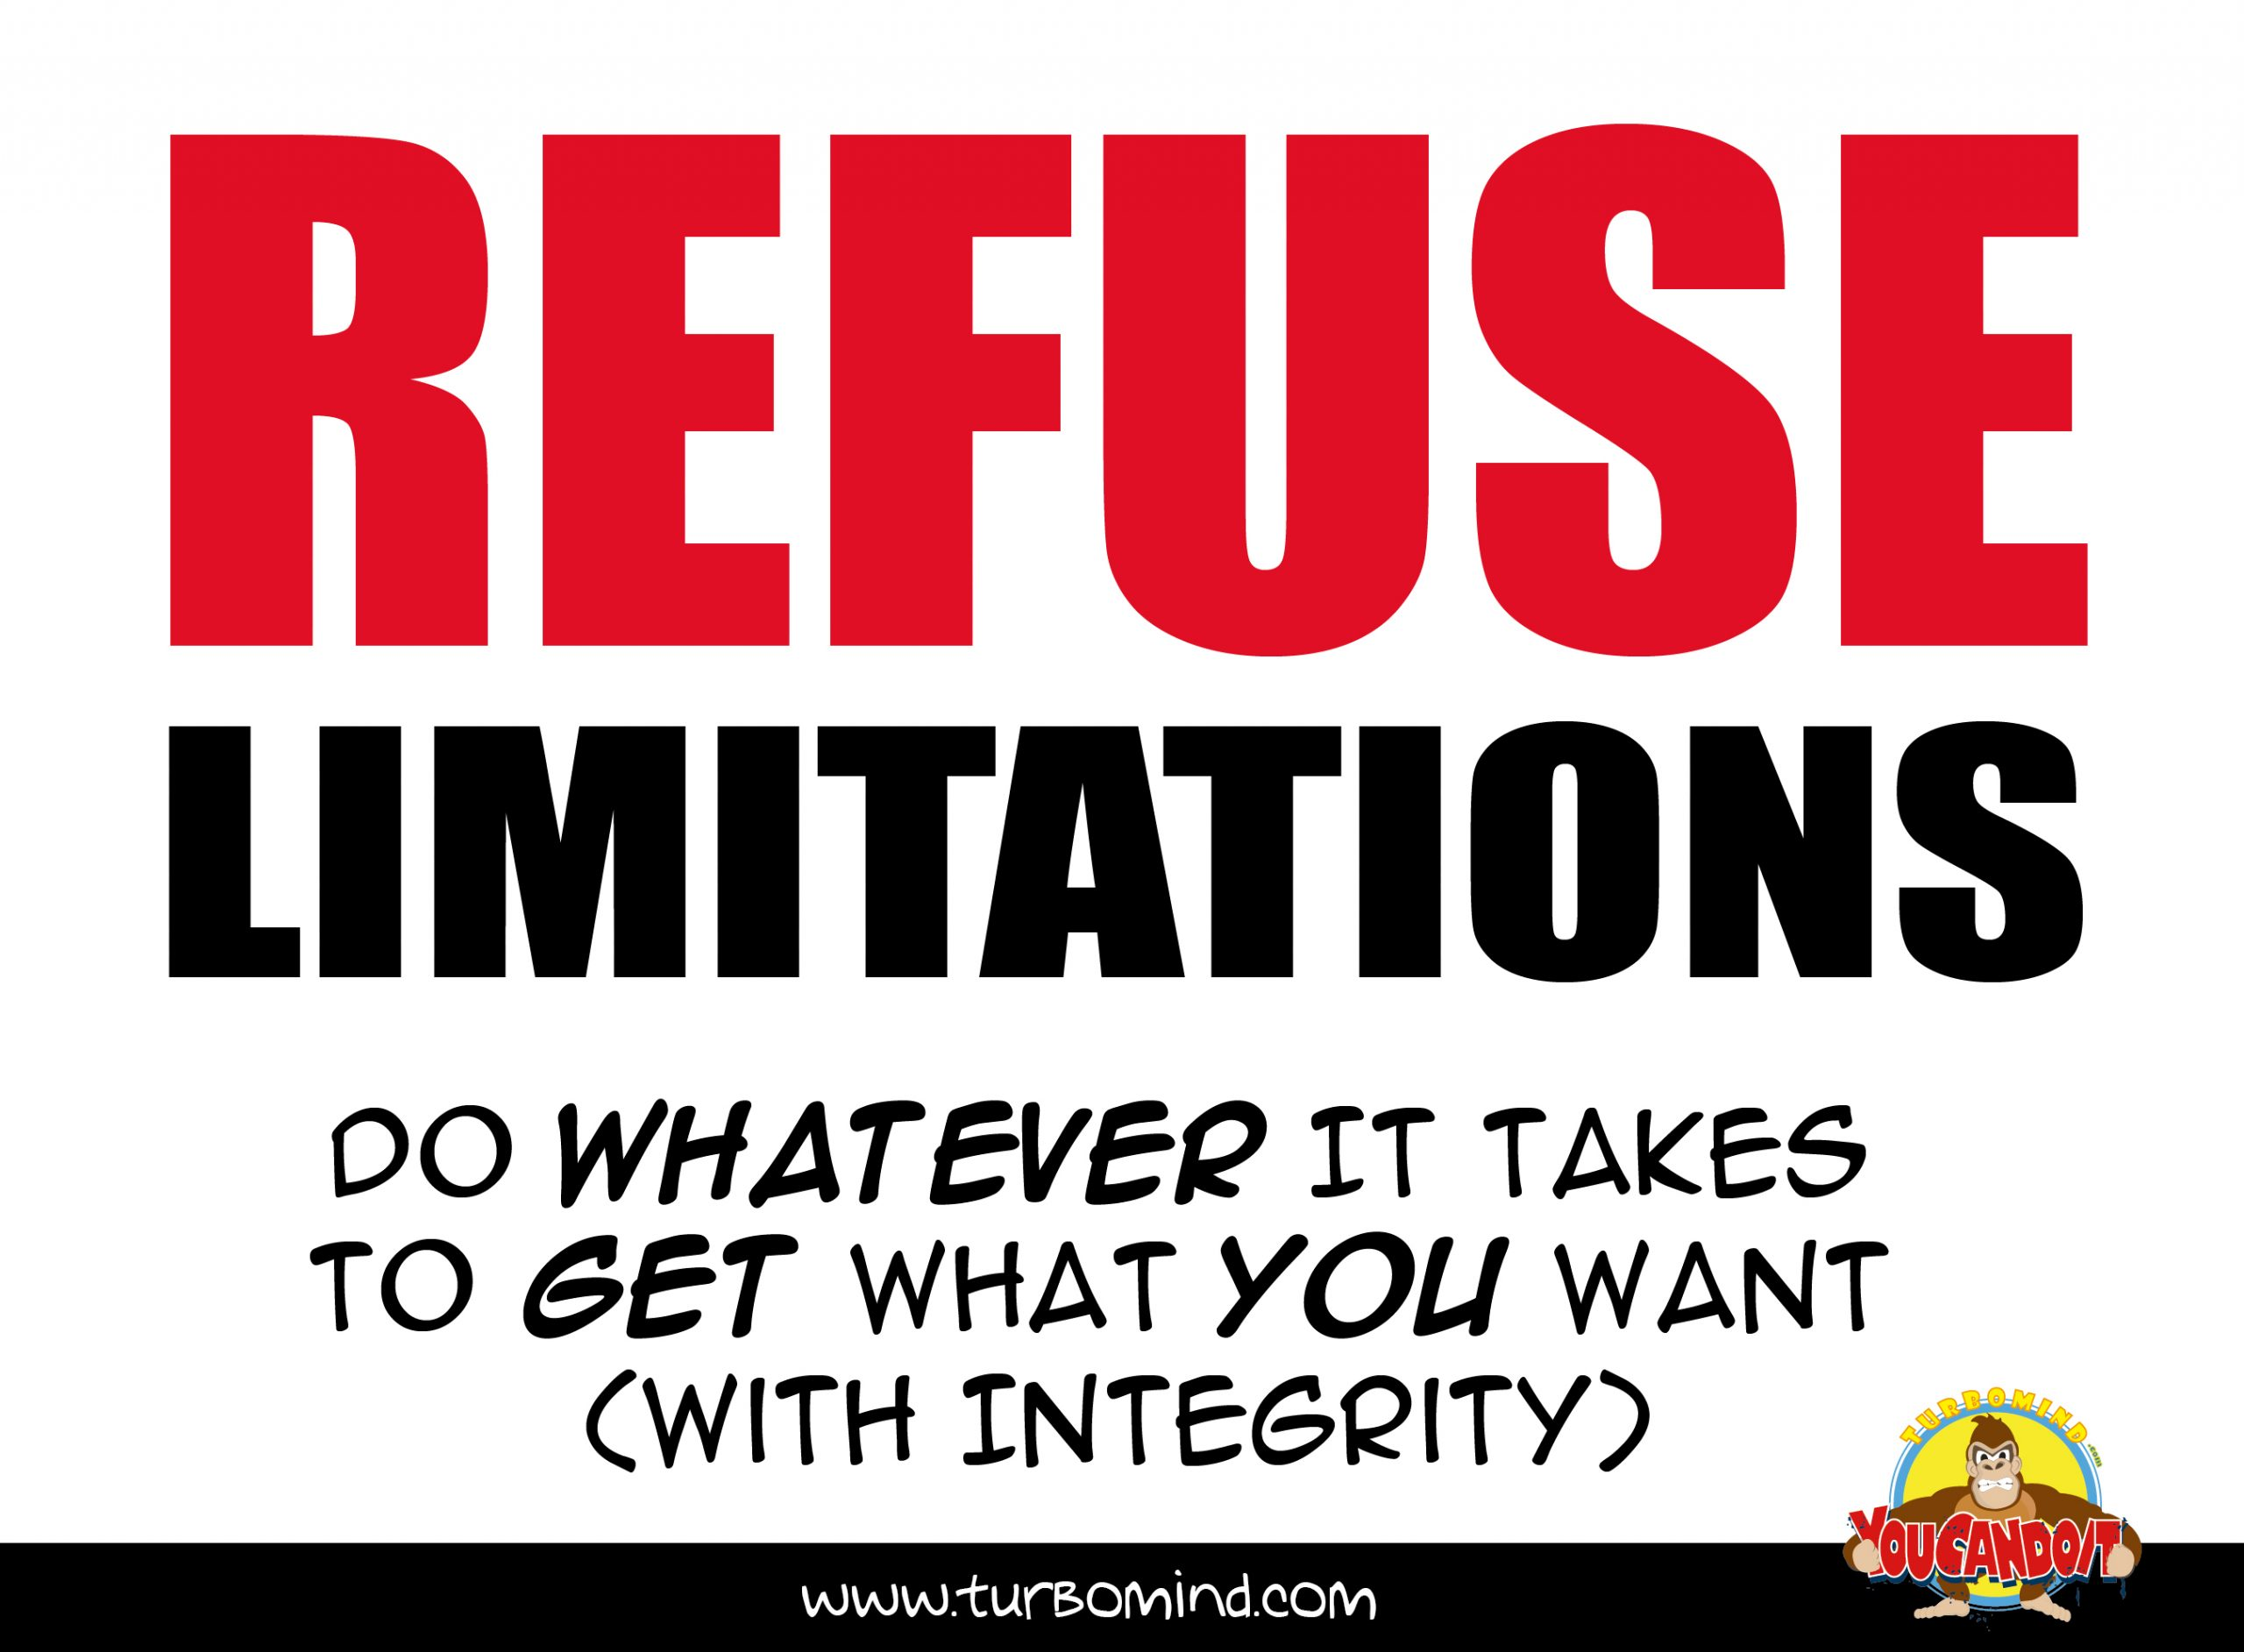 """TurboMind Inspiration Accessories, """"Refuse Limitations"""", https://www.turbomind.com"""